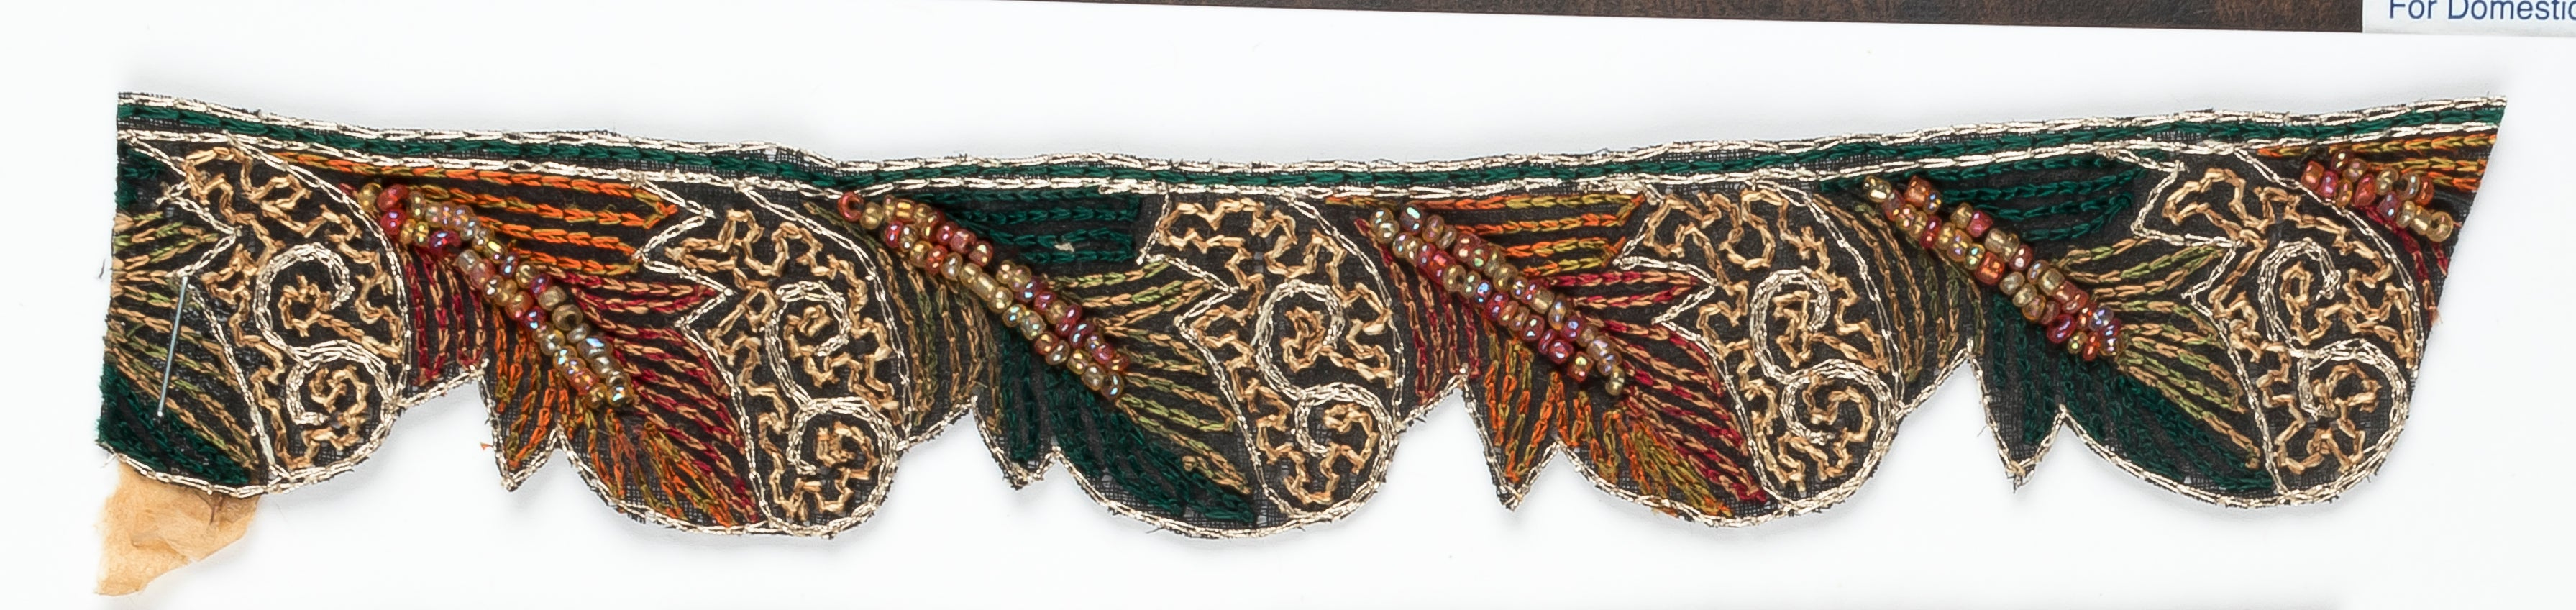 Floral Beaded Handcrafted Indian Trim WITH Fur